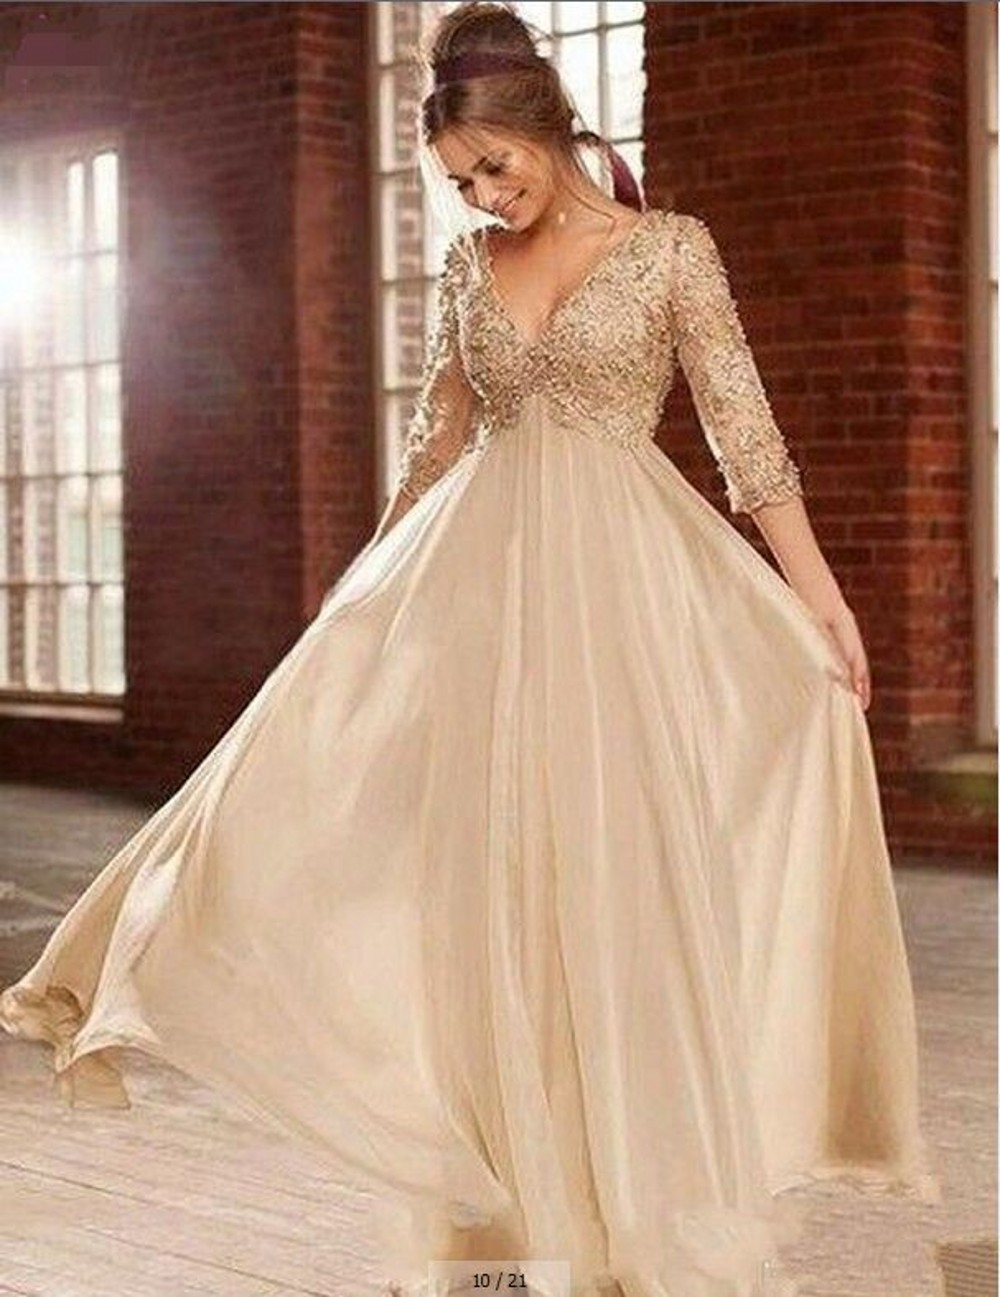 Plus size wedding dresses champagne color wedding dress for Colored wedding dresses plus size